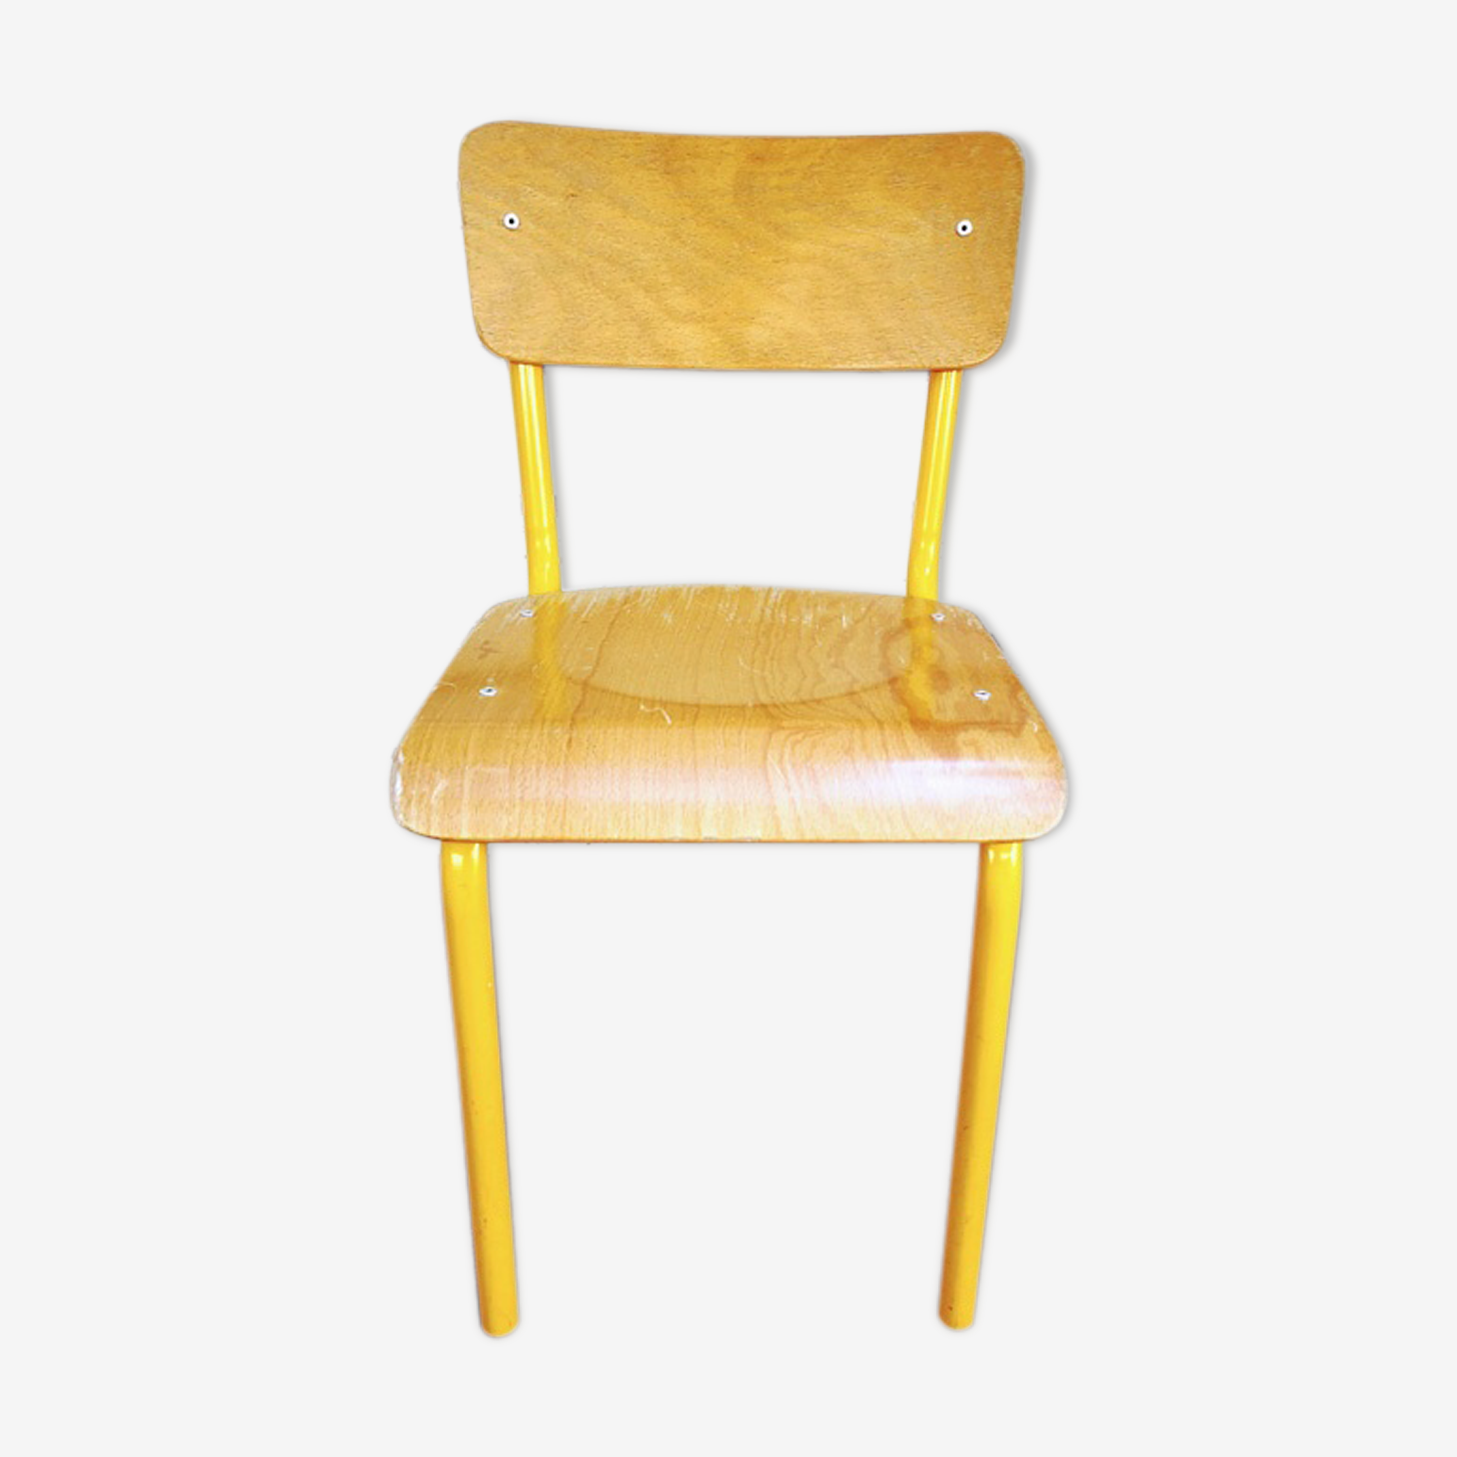 Chaise écolier type Mullca